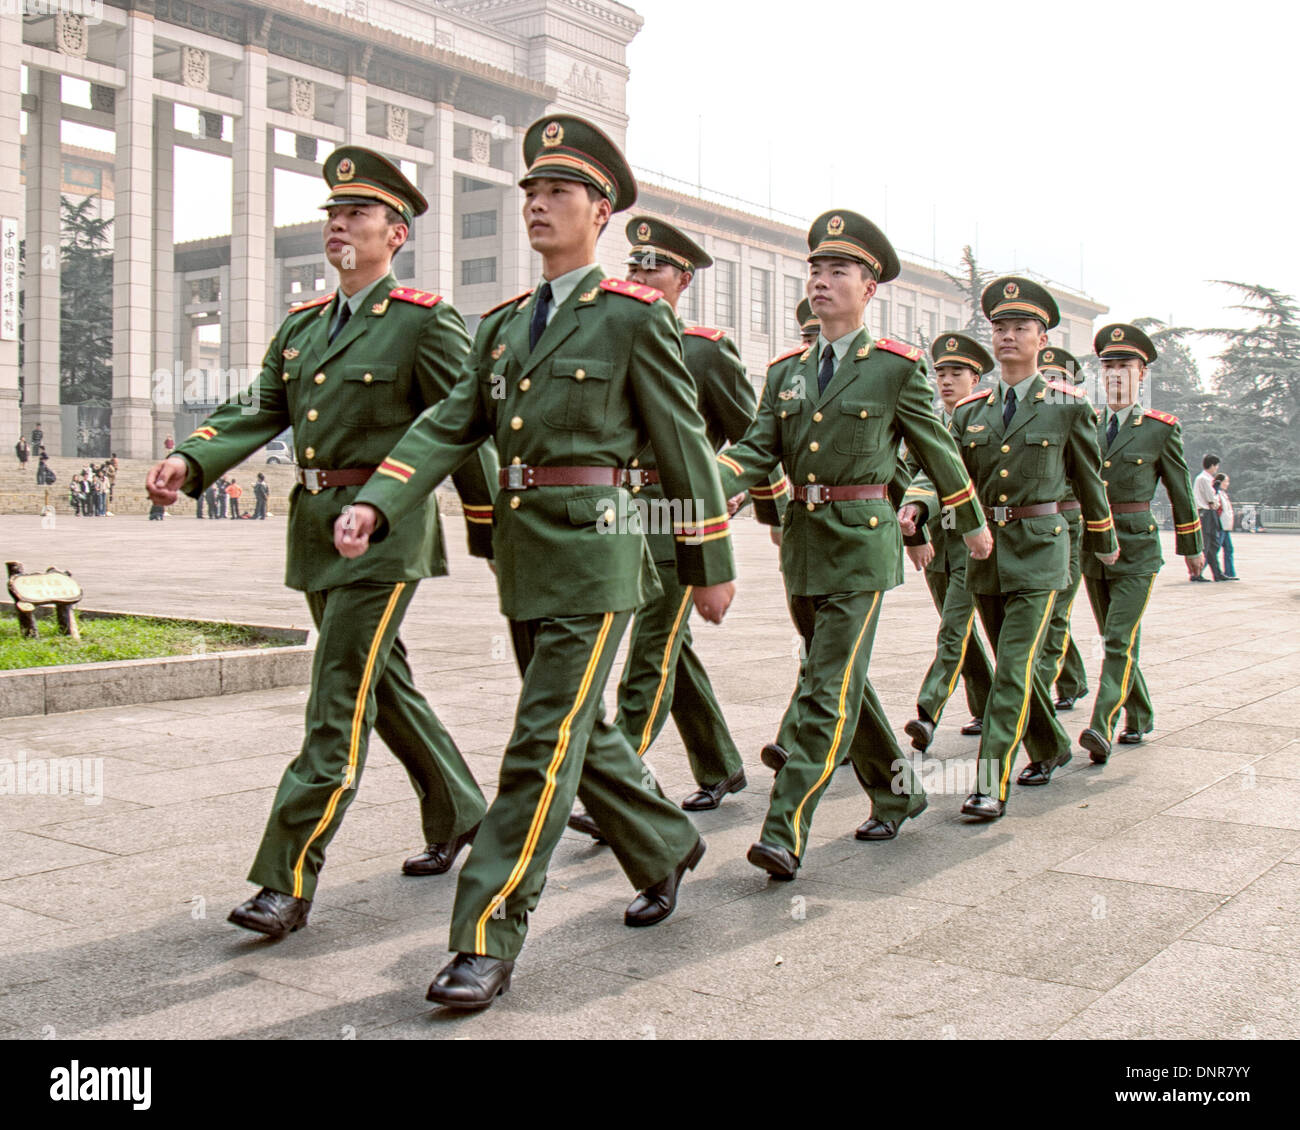 China Police: Beijing, China. 16th Oct, 2006. Uniformed Police Officers